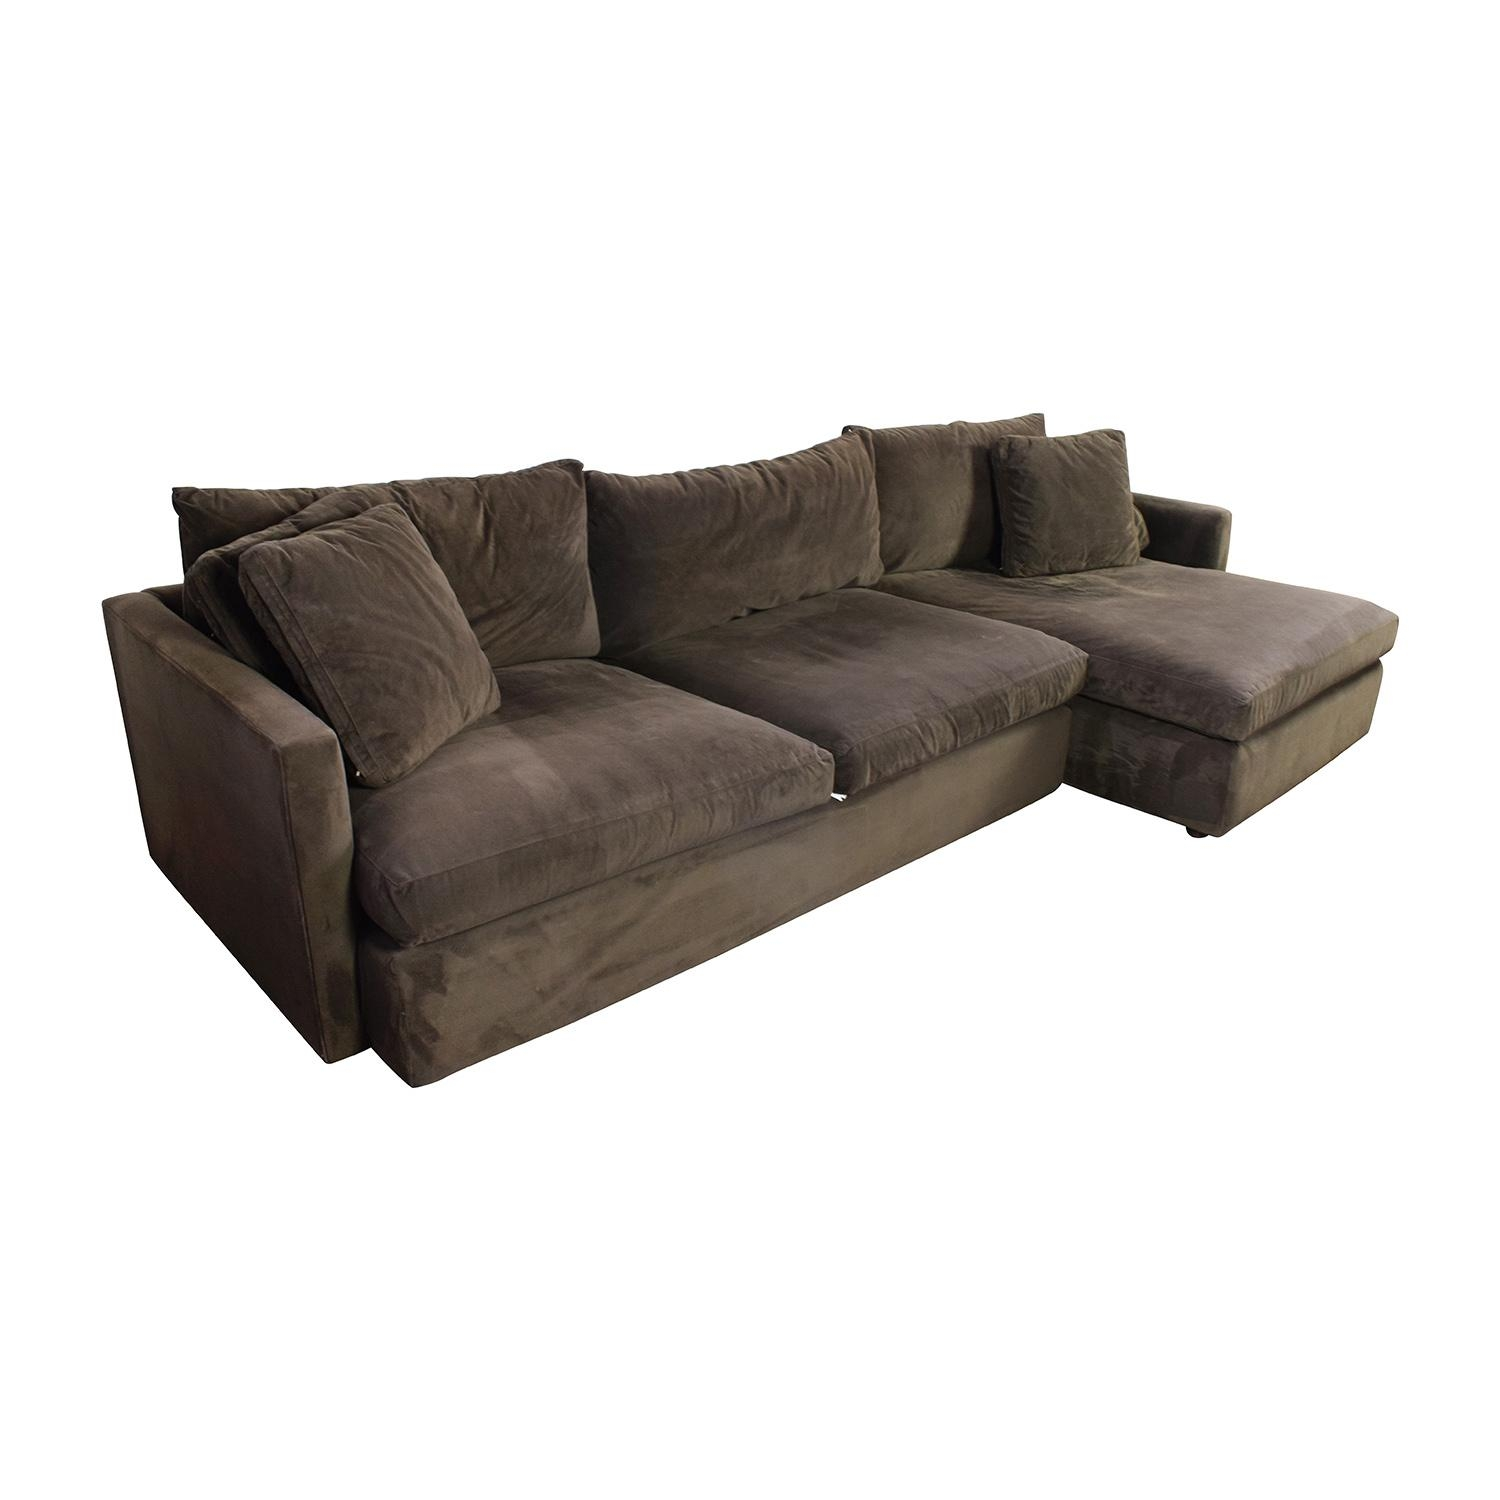 89% Off - Crate And Barrel Crate & Barrel Brown Left Arm Sectional throughout Sectional Crate and Barrel